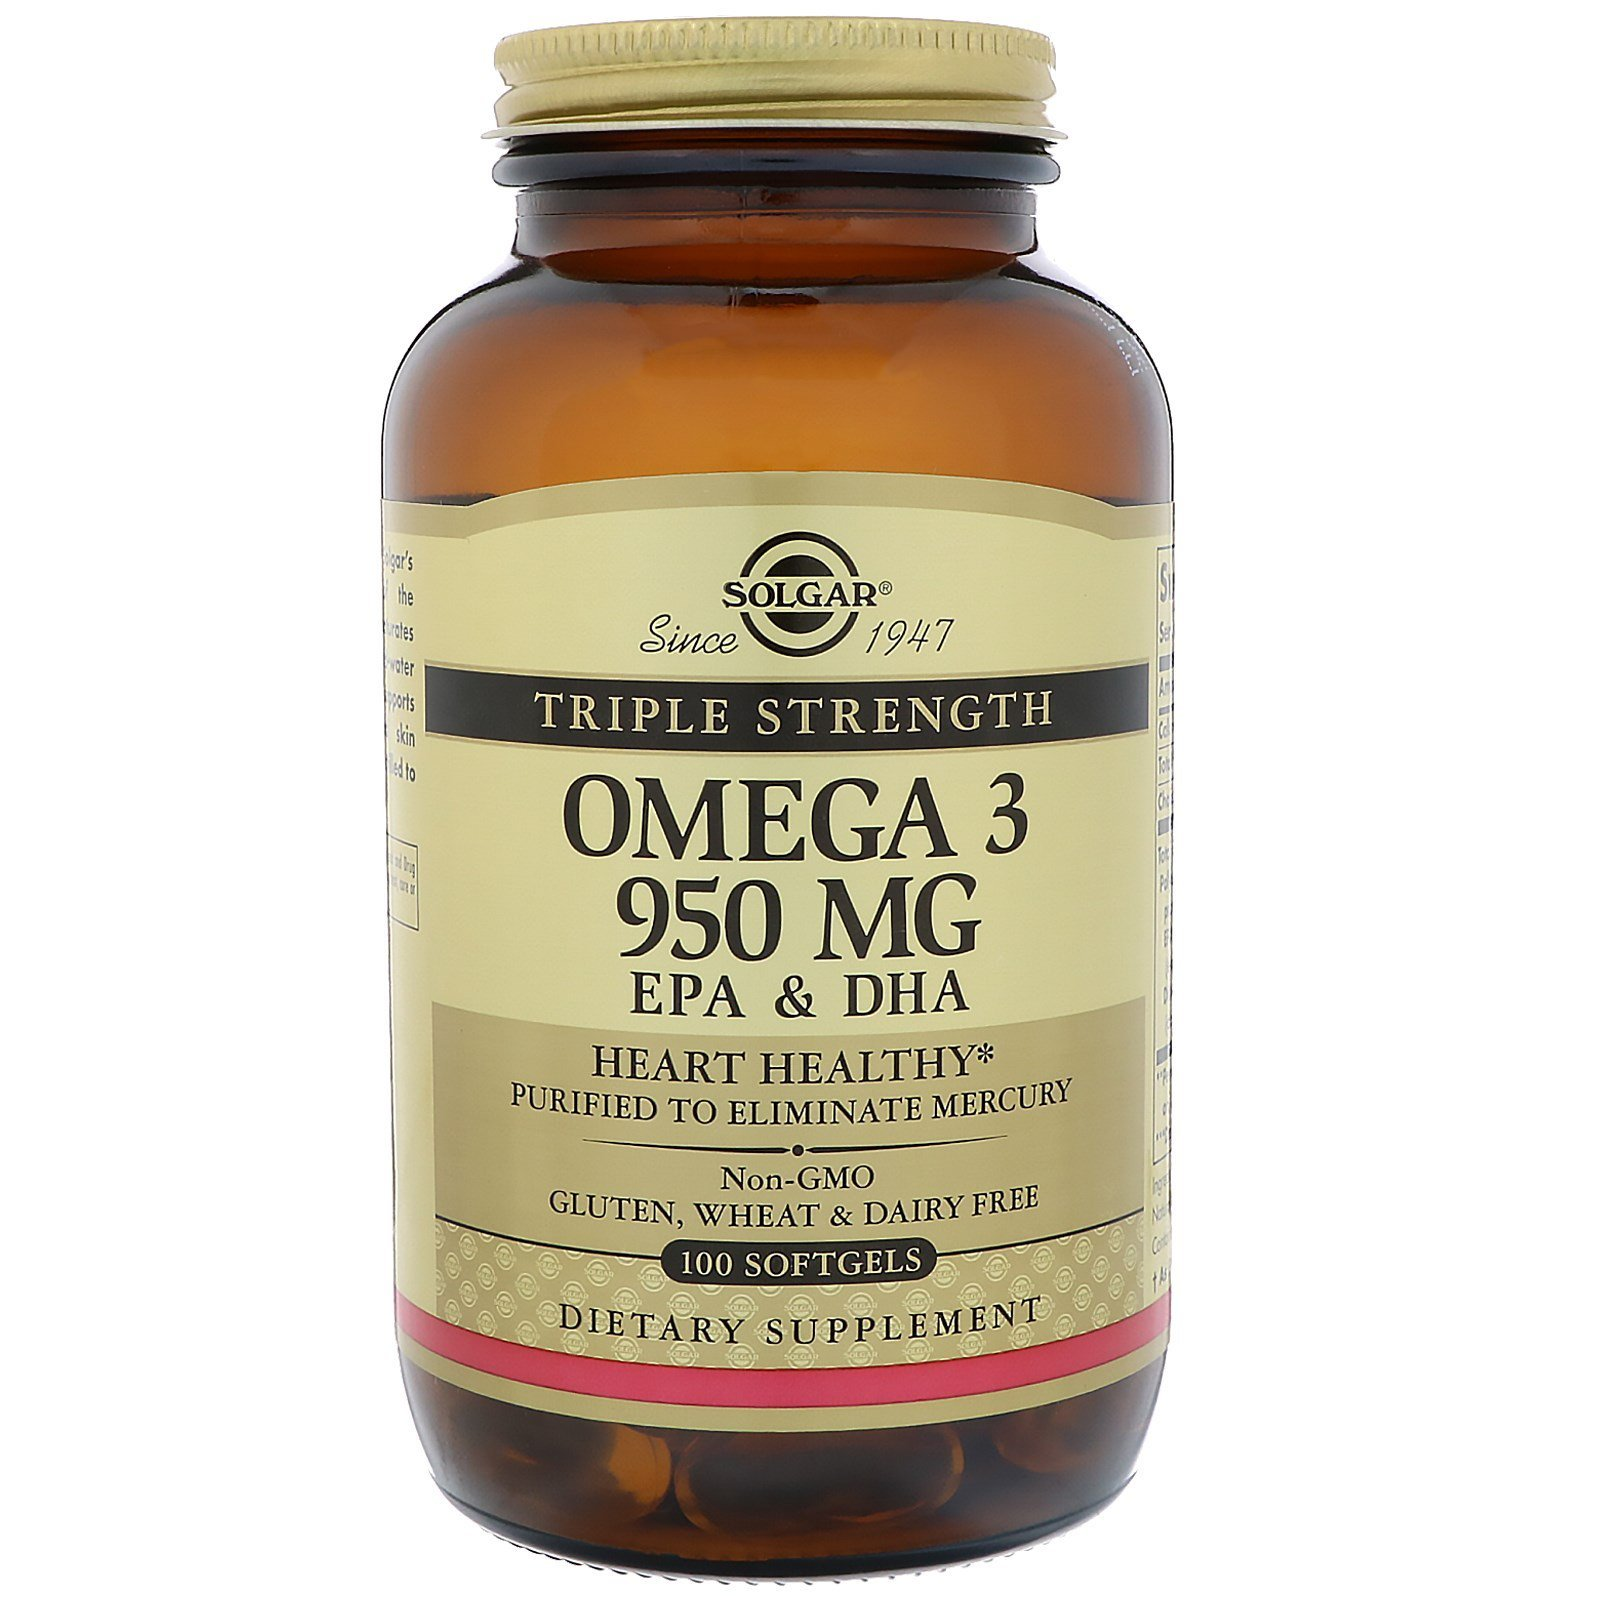 solgar omega 3 epa dha triple strength 950 mg 100 softgels. Black Bedroom Furniture Sets. Home Design Ideas